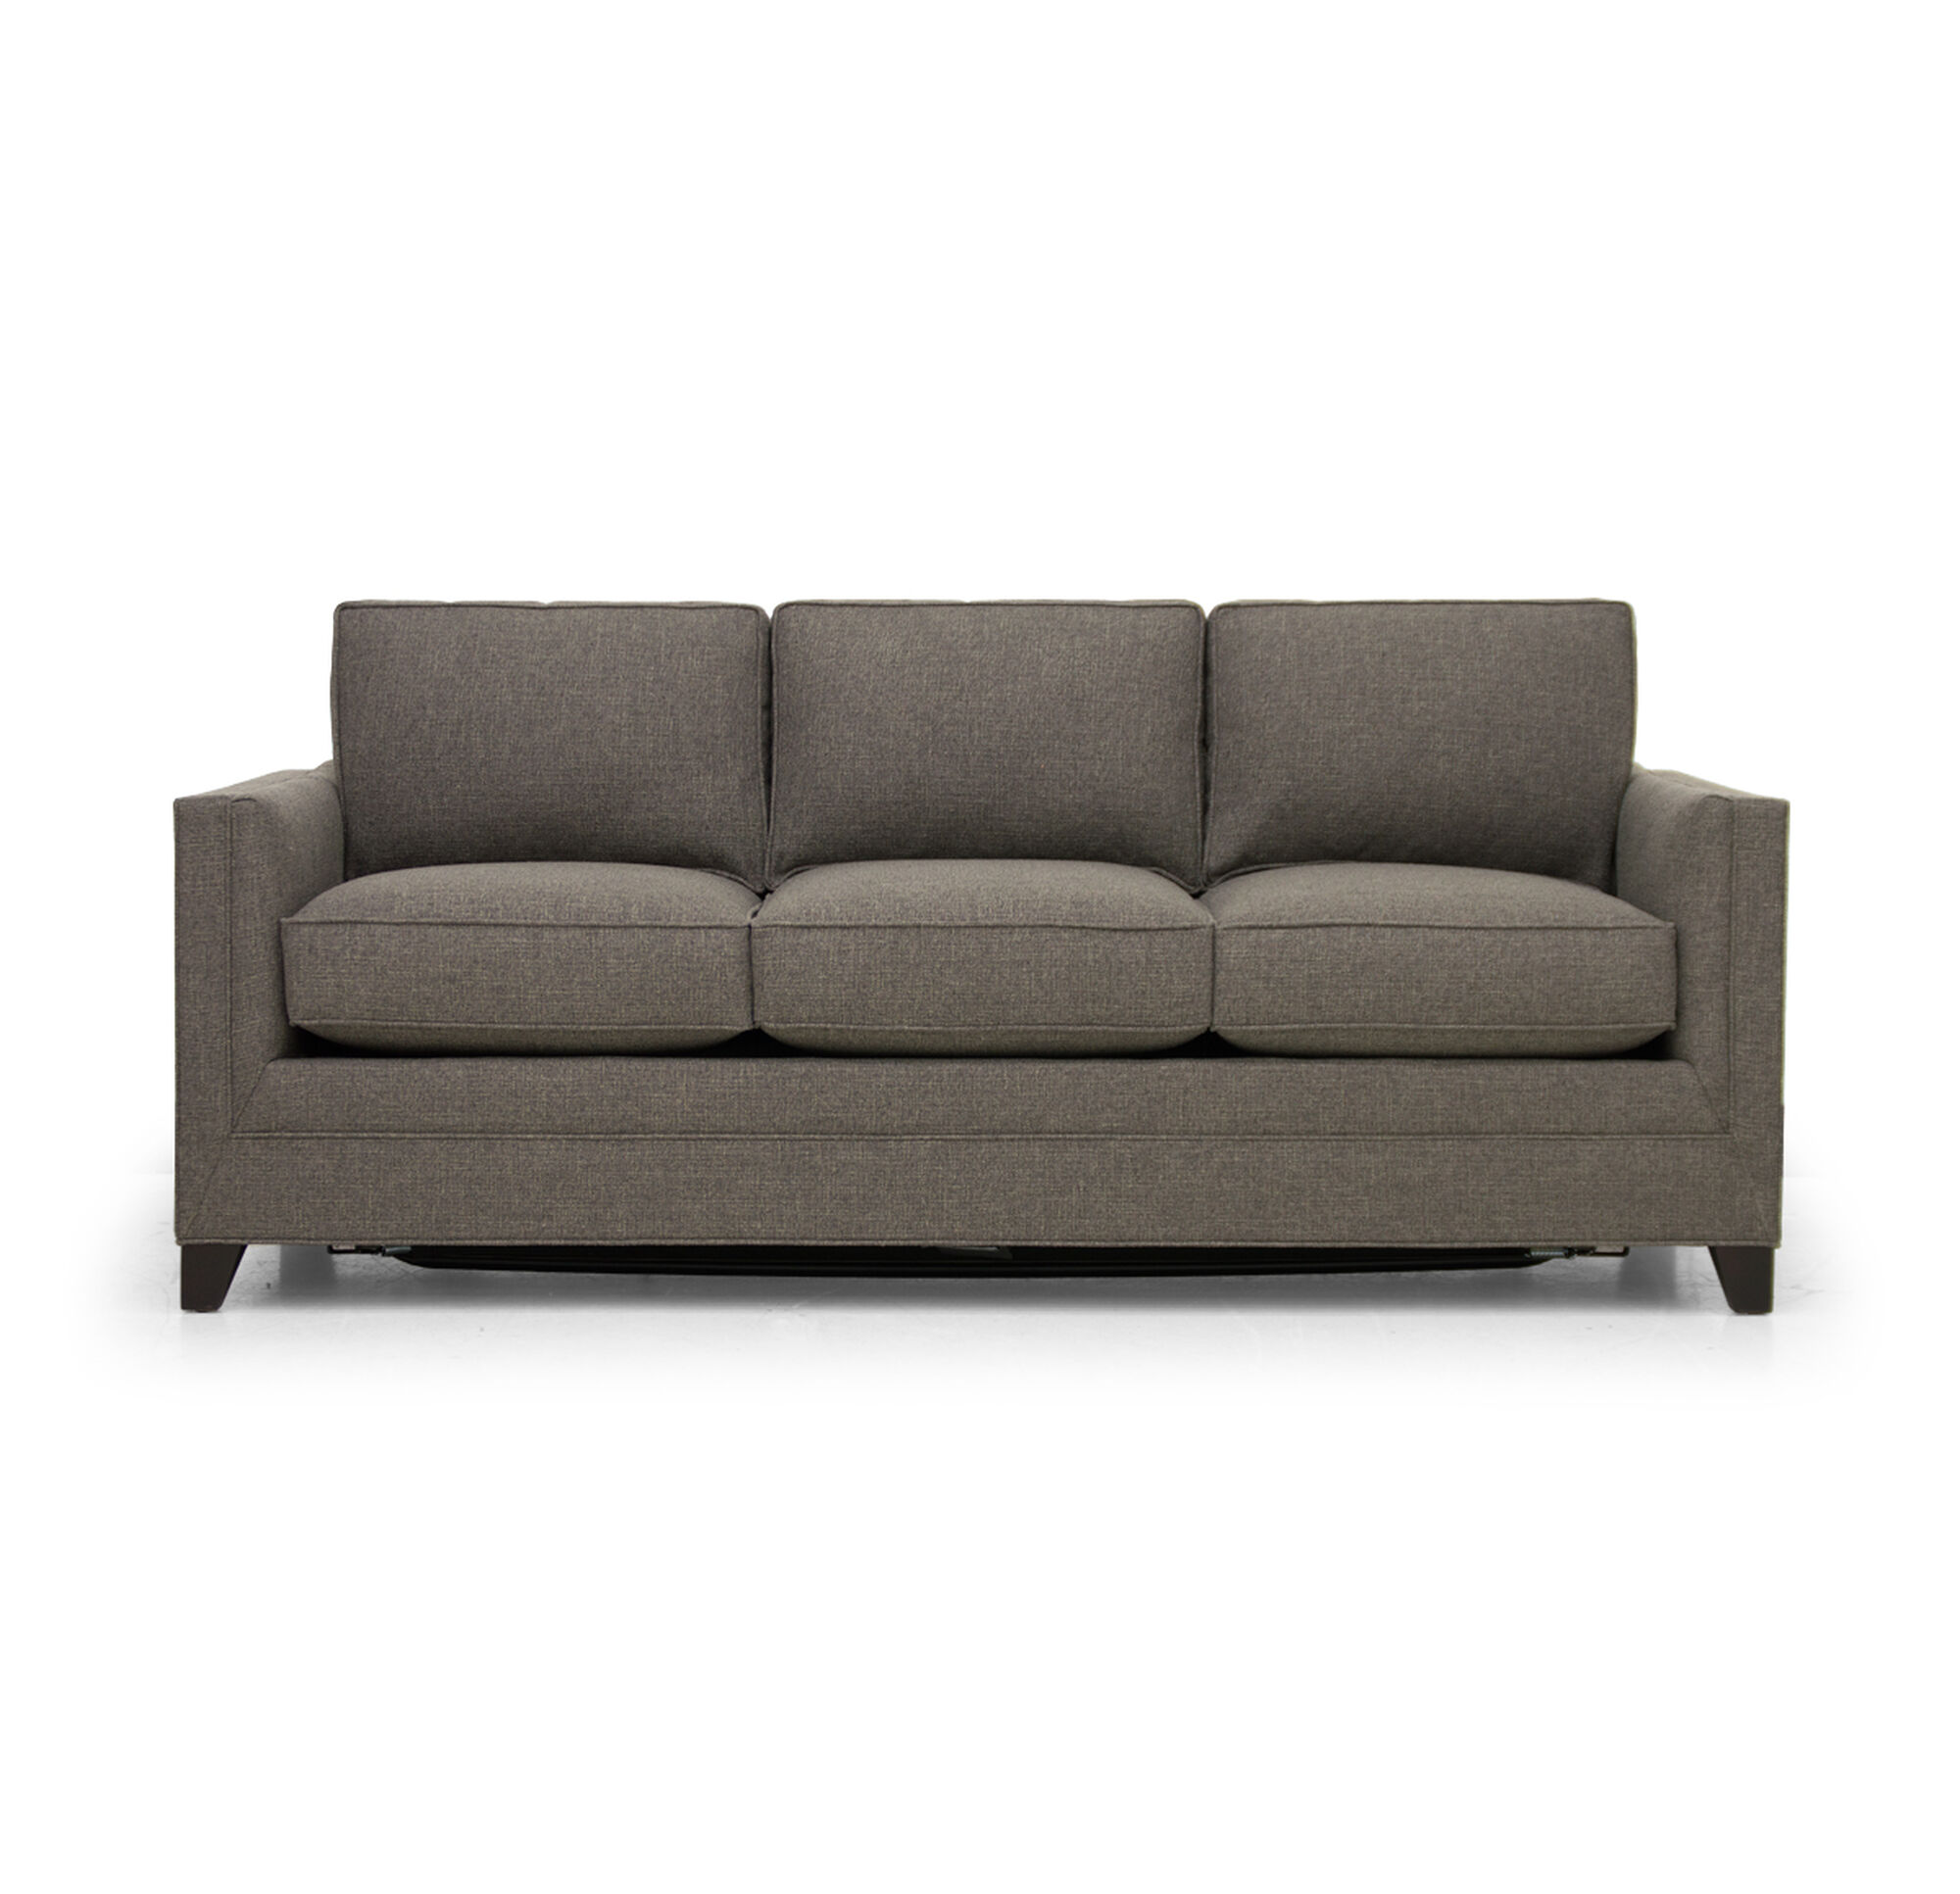 REESE SUPER LUXE QUEEN SLEEPER SOFA : Reese877 002T104160Heroa from www.mgbwhome.com size 2000 x 1933 jpeg 231kB